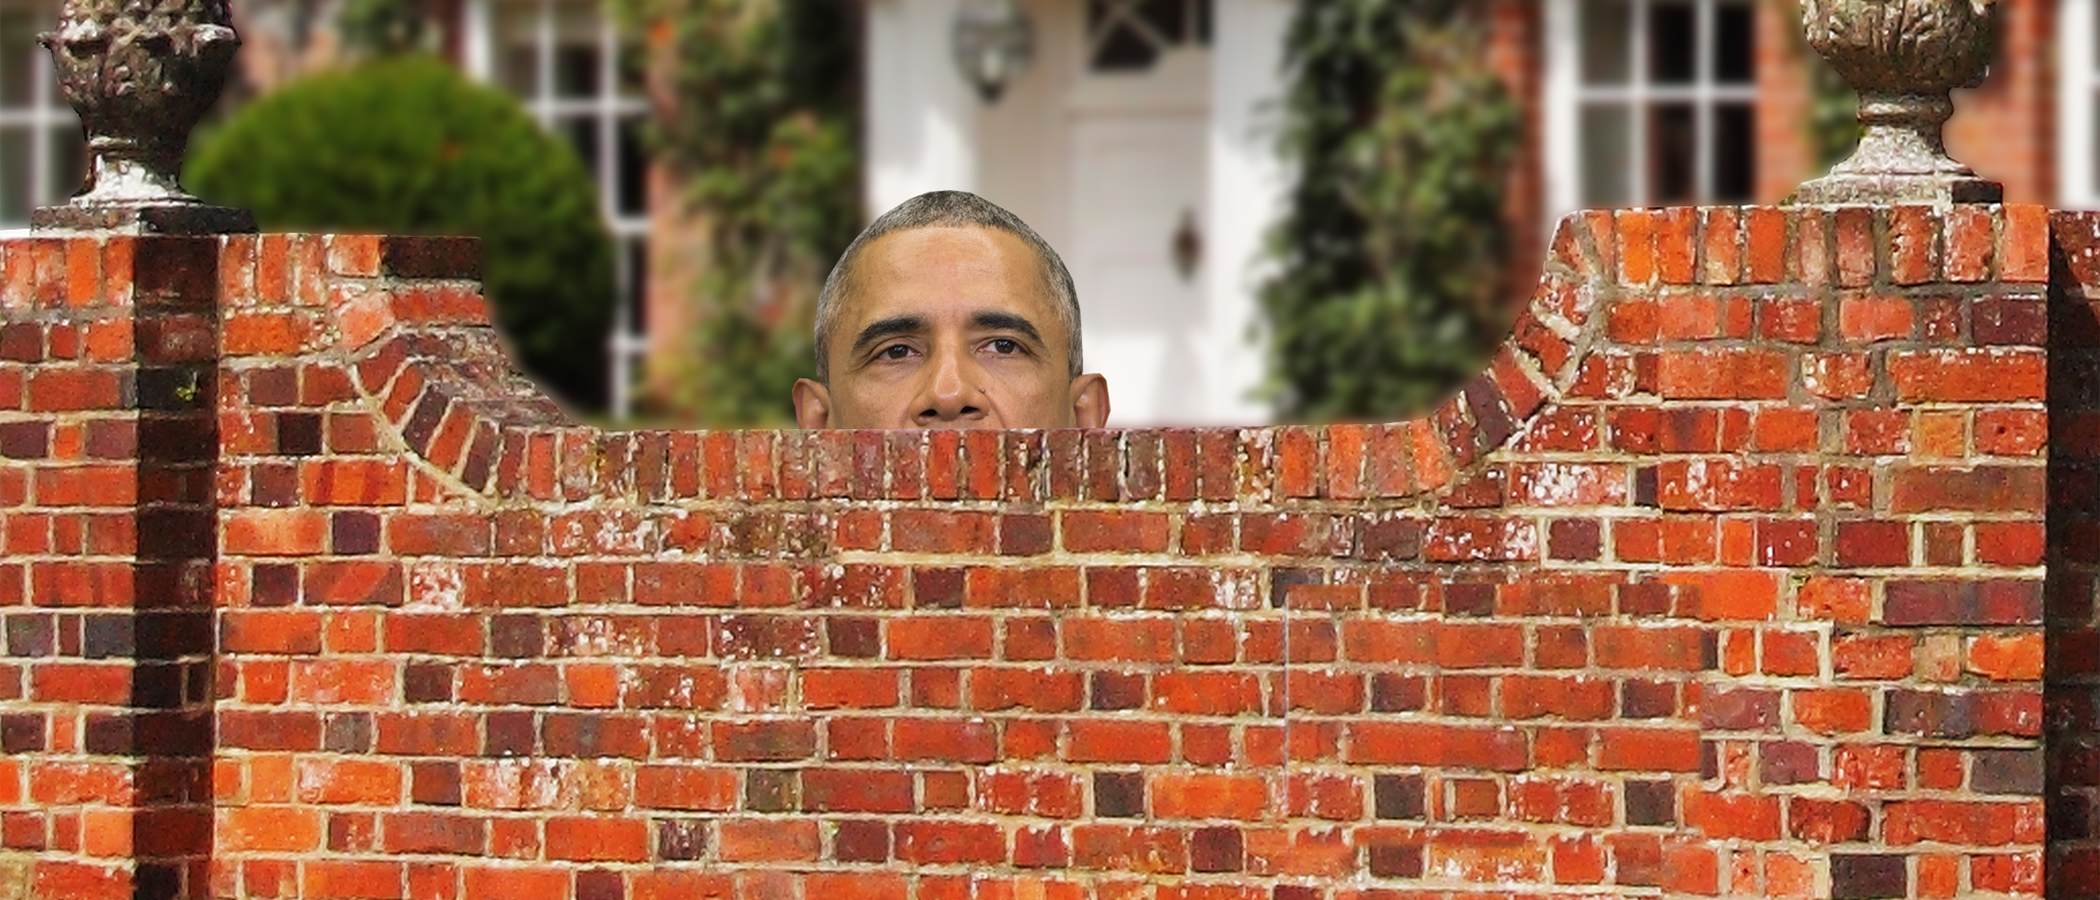 Obamawall by Mike Raust